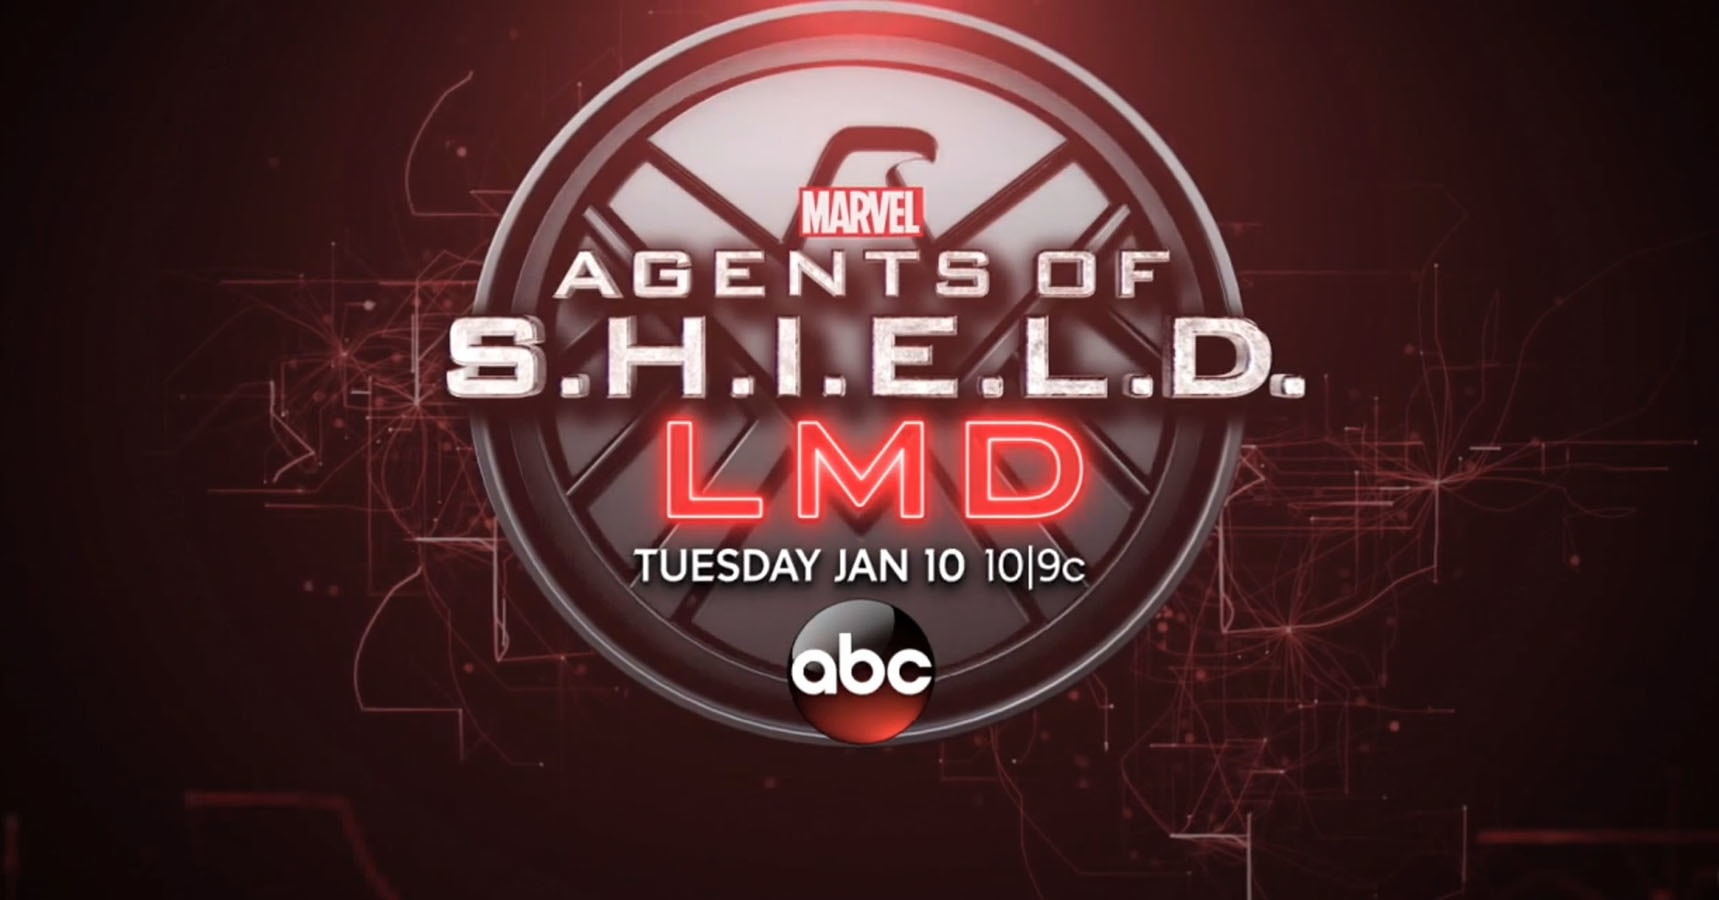 11122016_agents_of_shield_s4_post_1